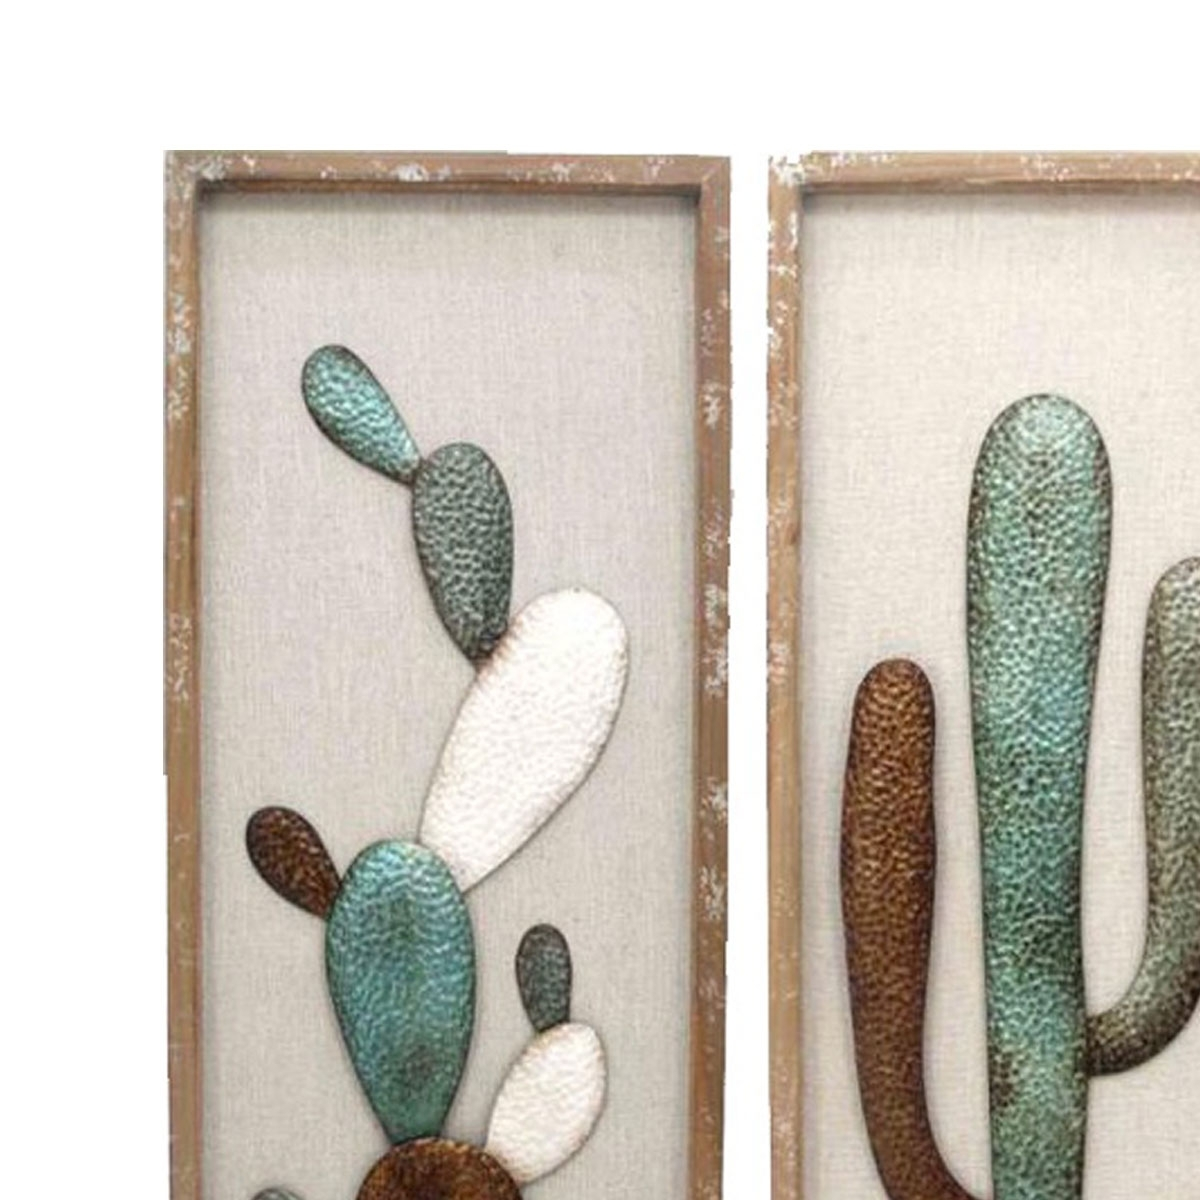 Framed Cactus Wood And Metal Wall Art | Luxe Mirrors regarding Most Current Cactus Wall Art